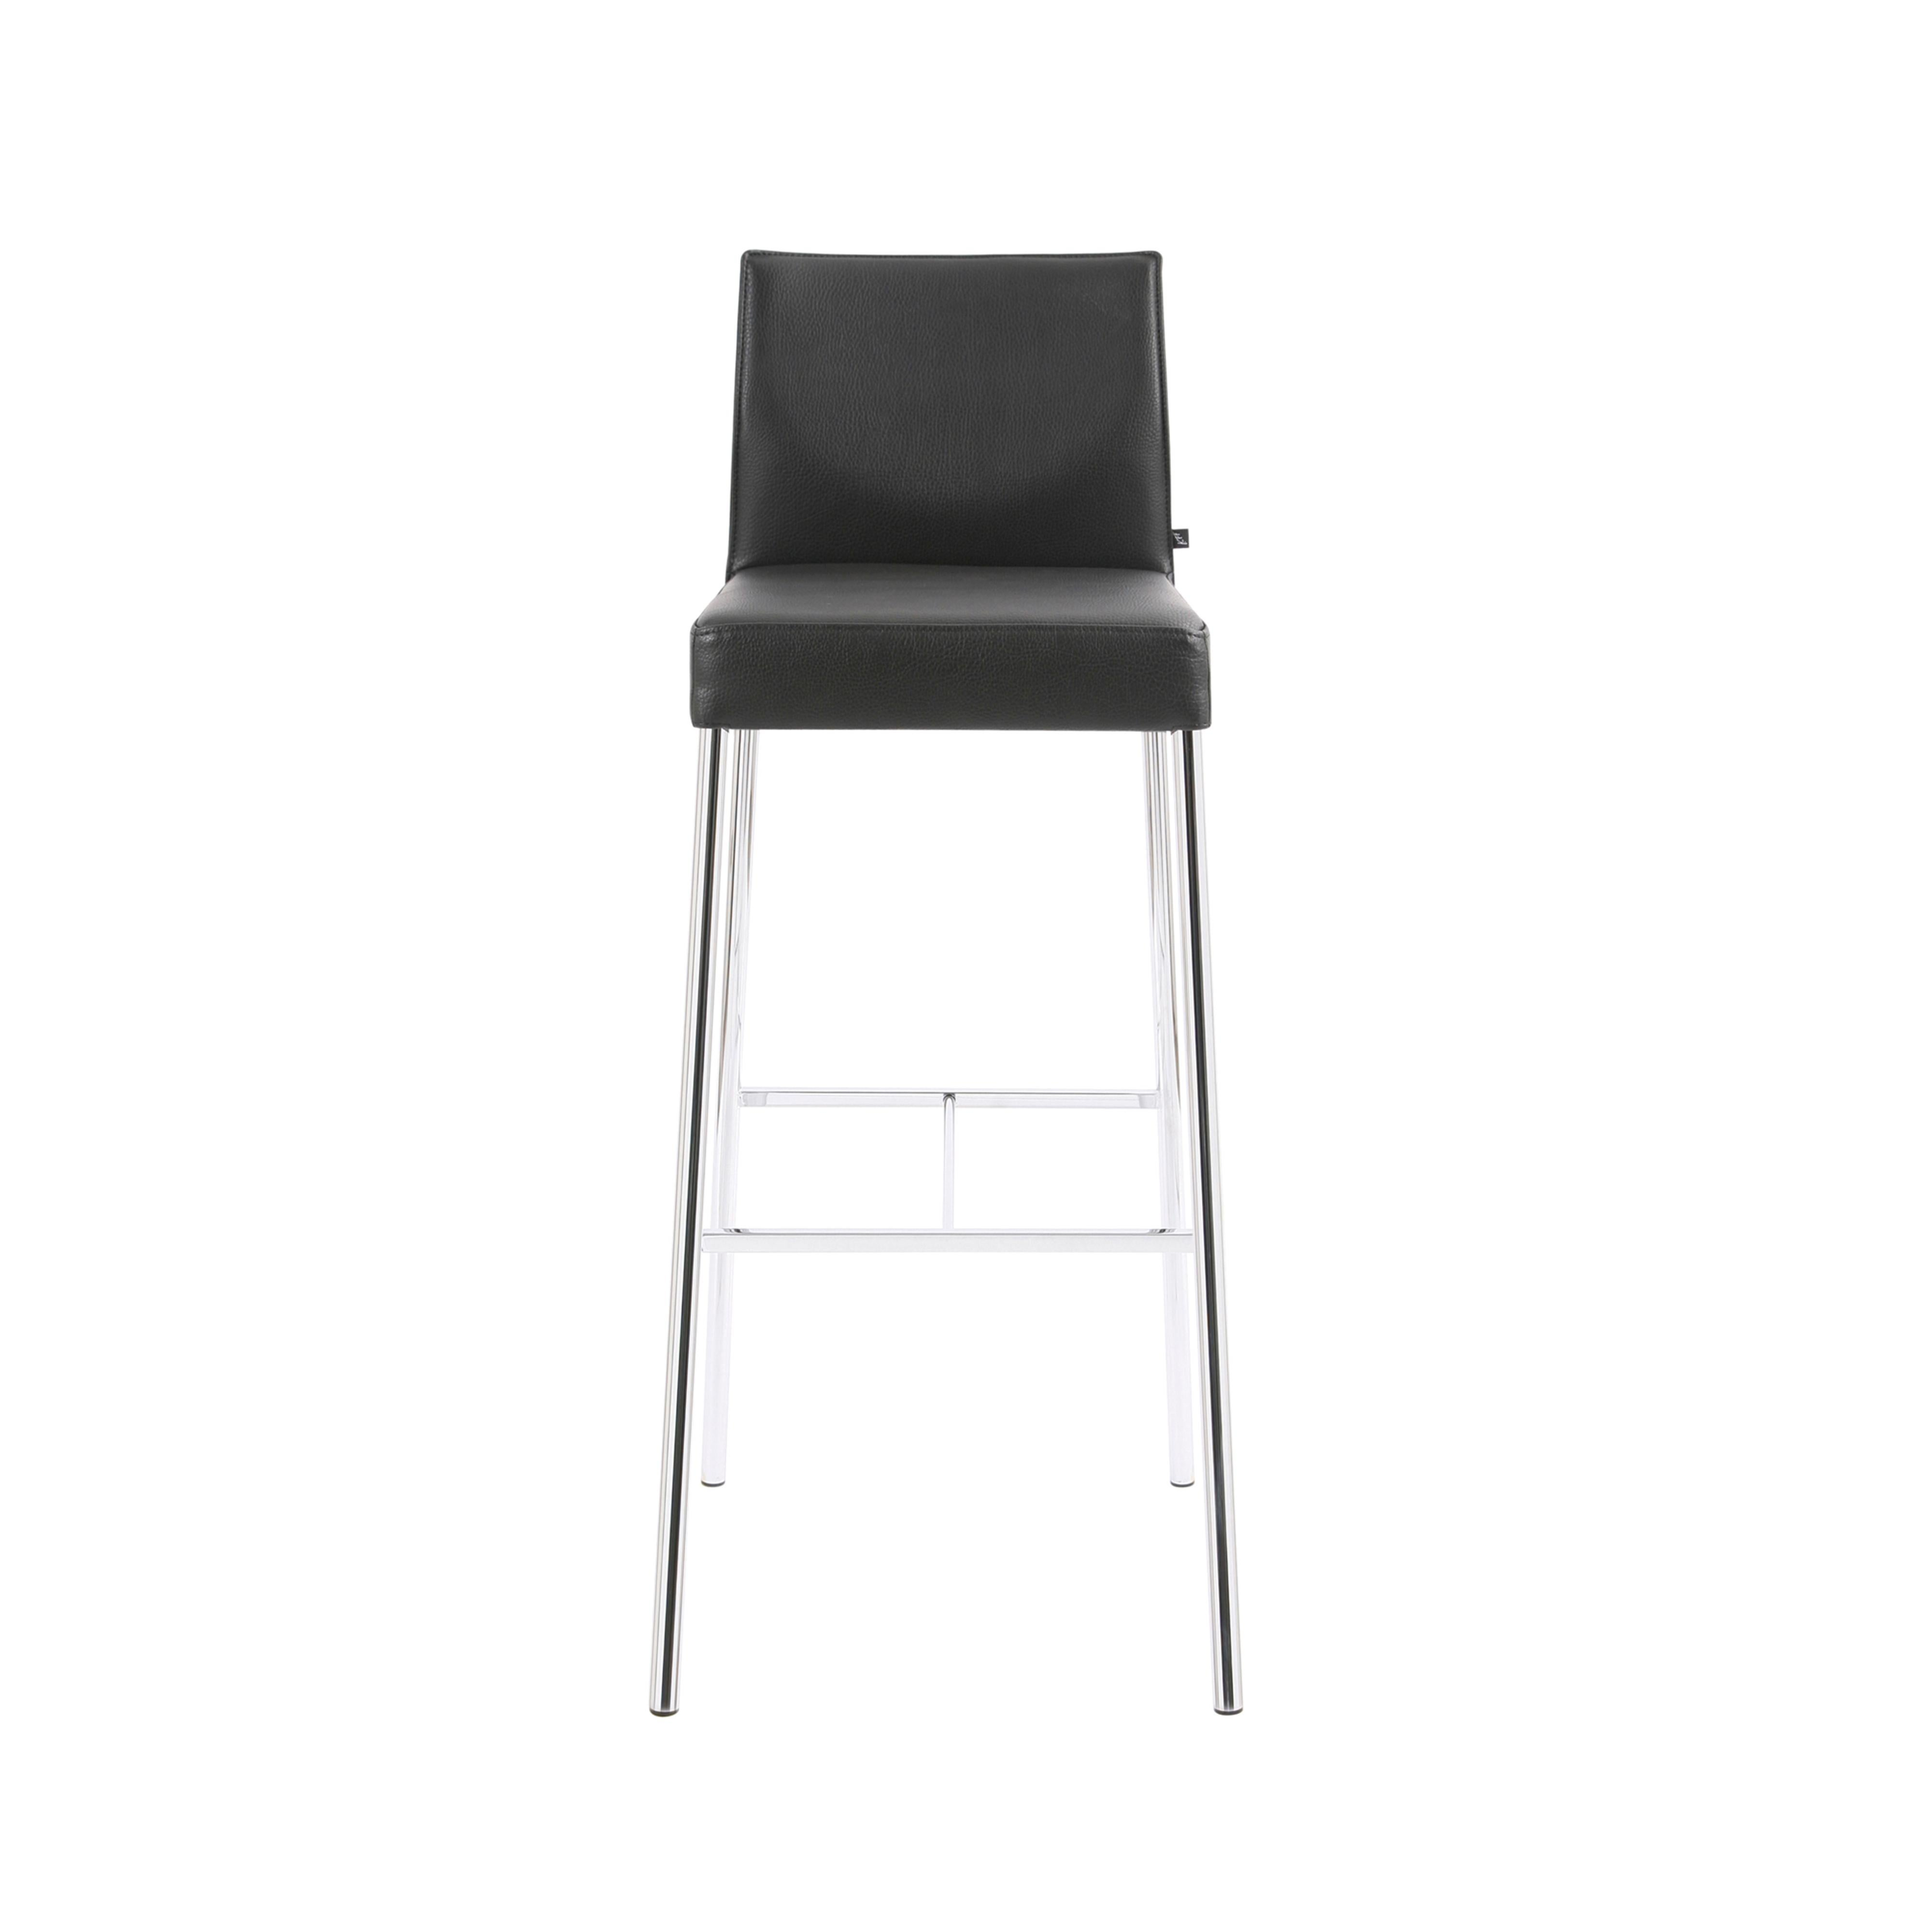 GLOOH Bar Stool in Black Leather by KFF